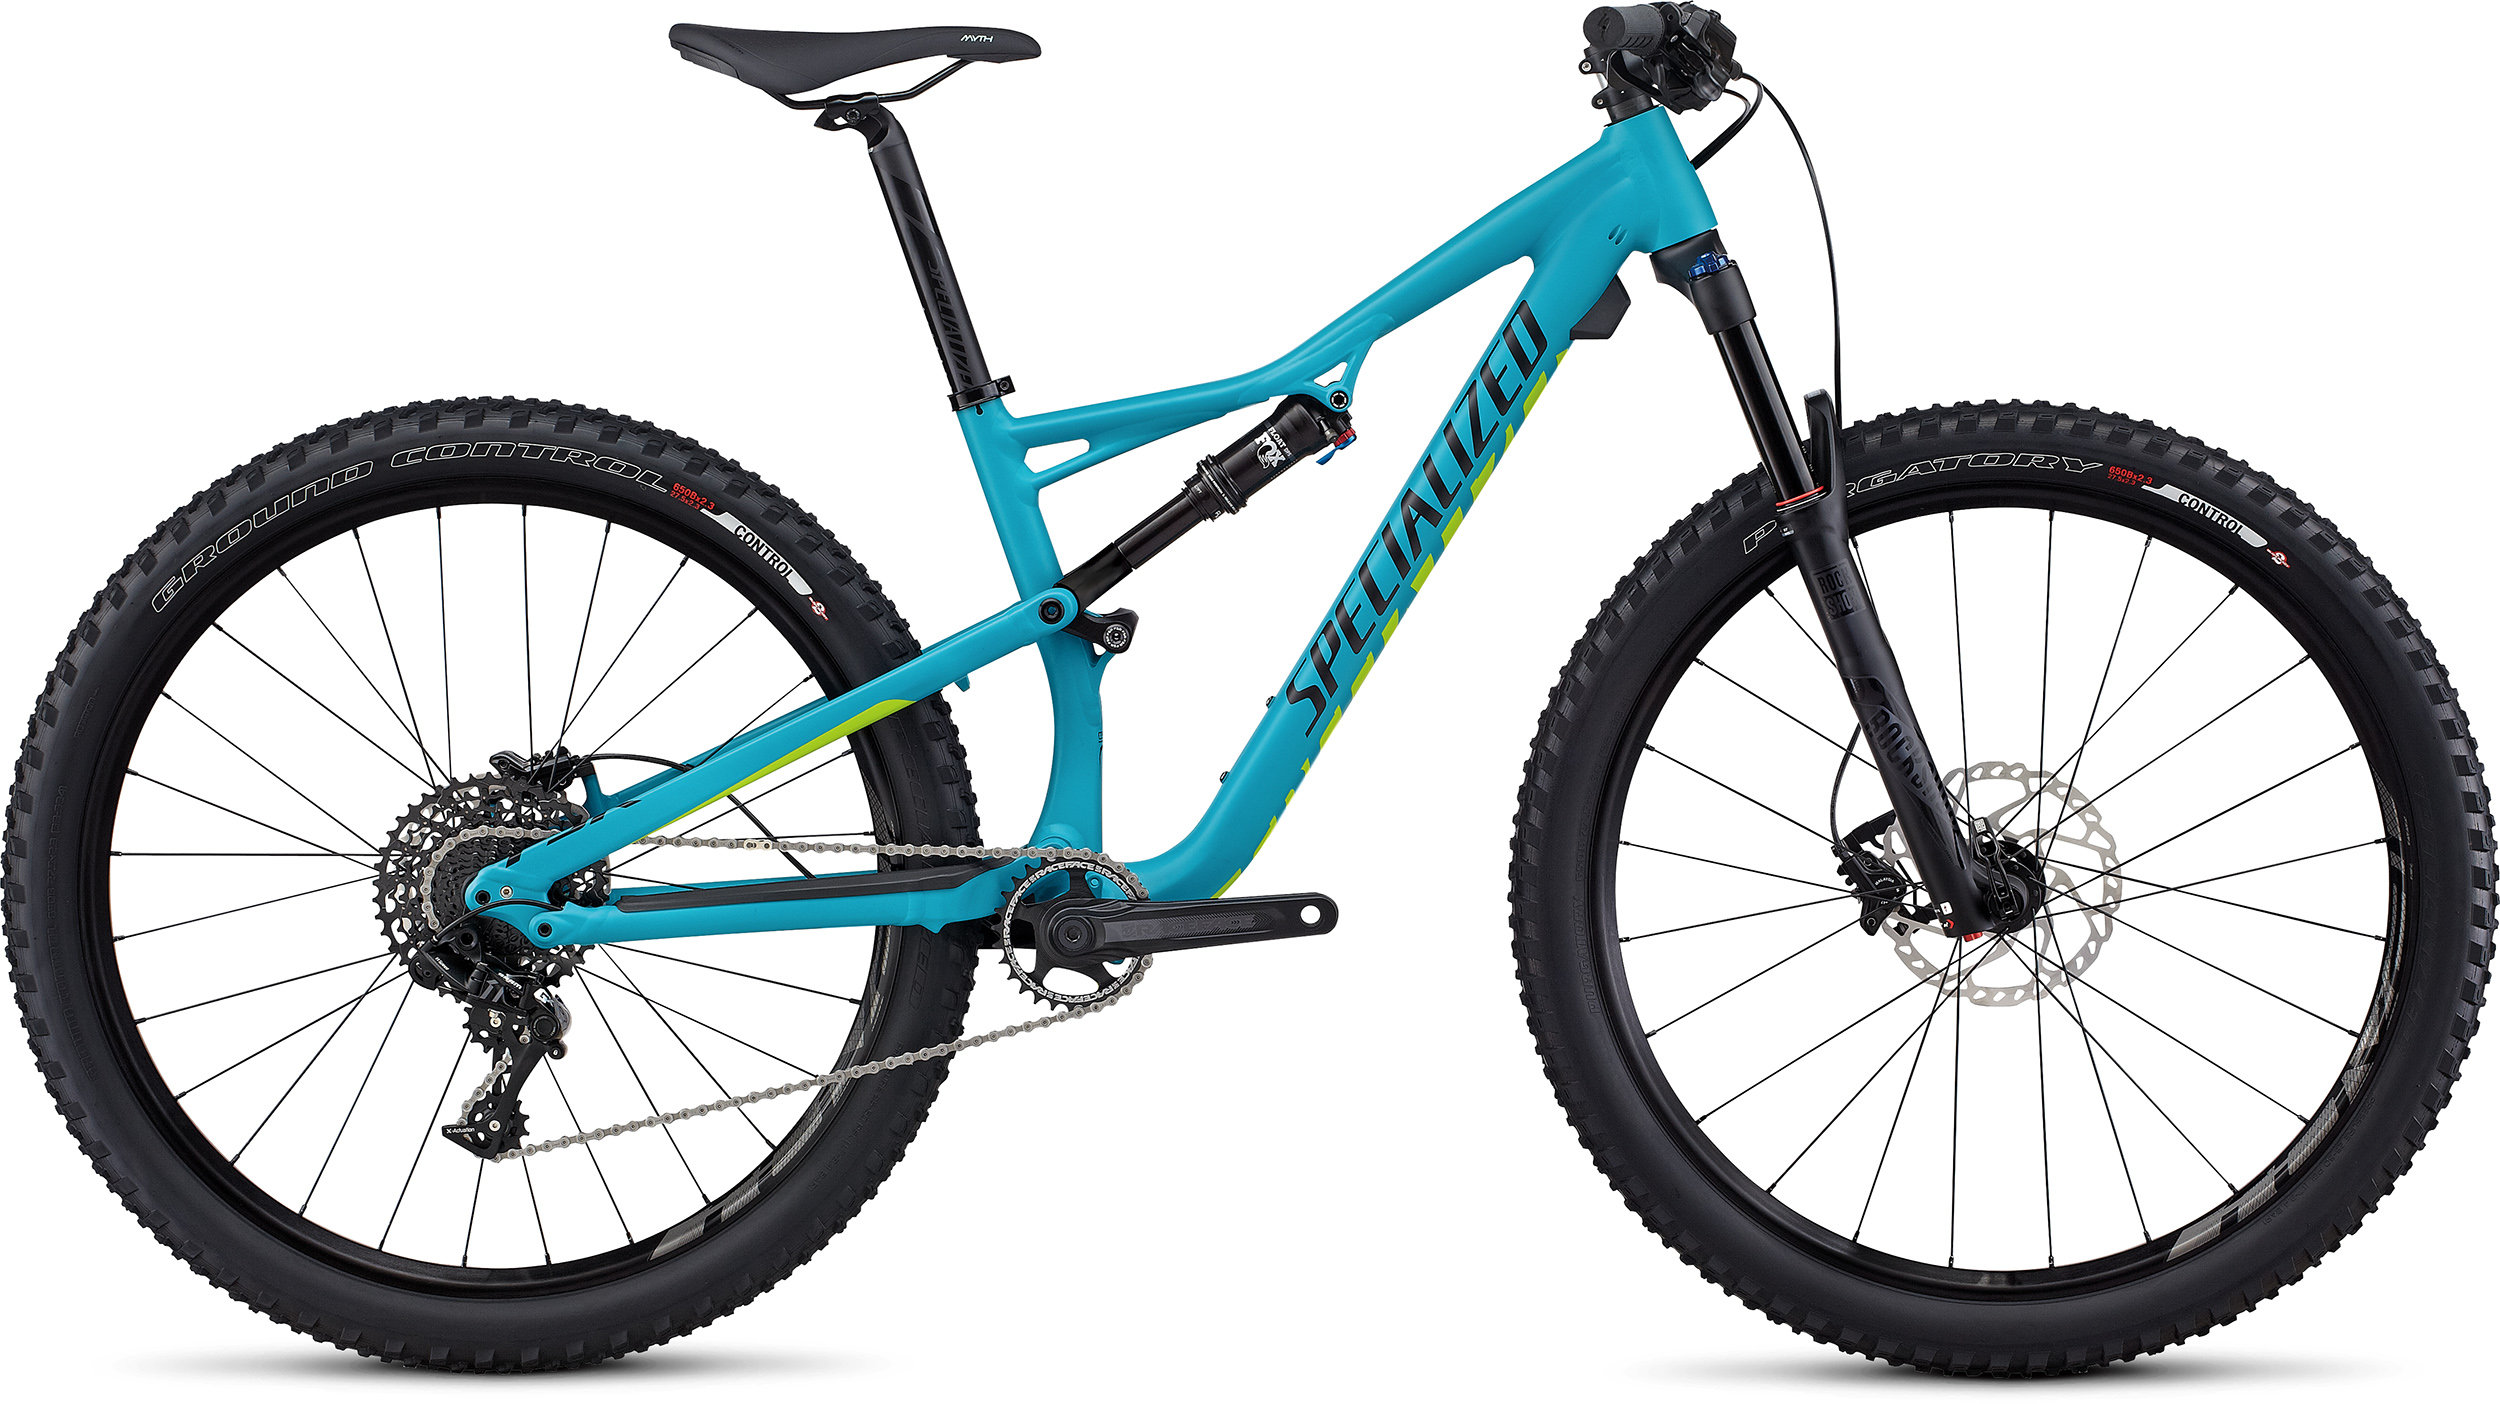 SPECIALIZED CAMBER WMN FSR COMP 650B TUR/HYP/TARBLK XS - Bikedreams & Dustbikes